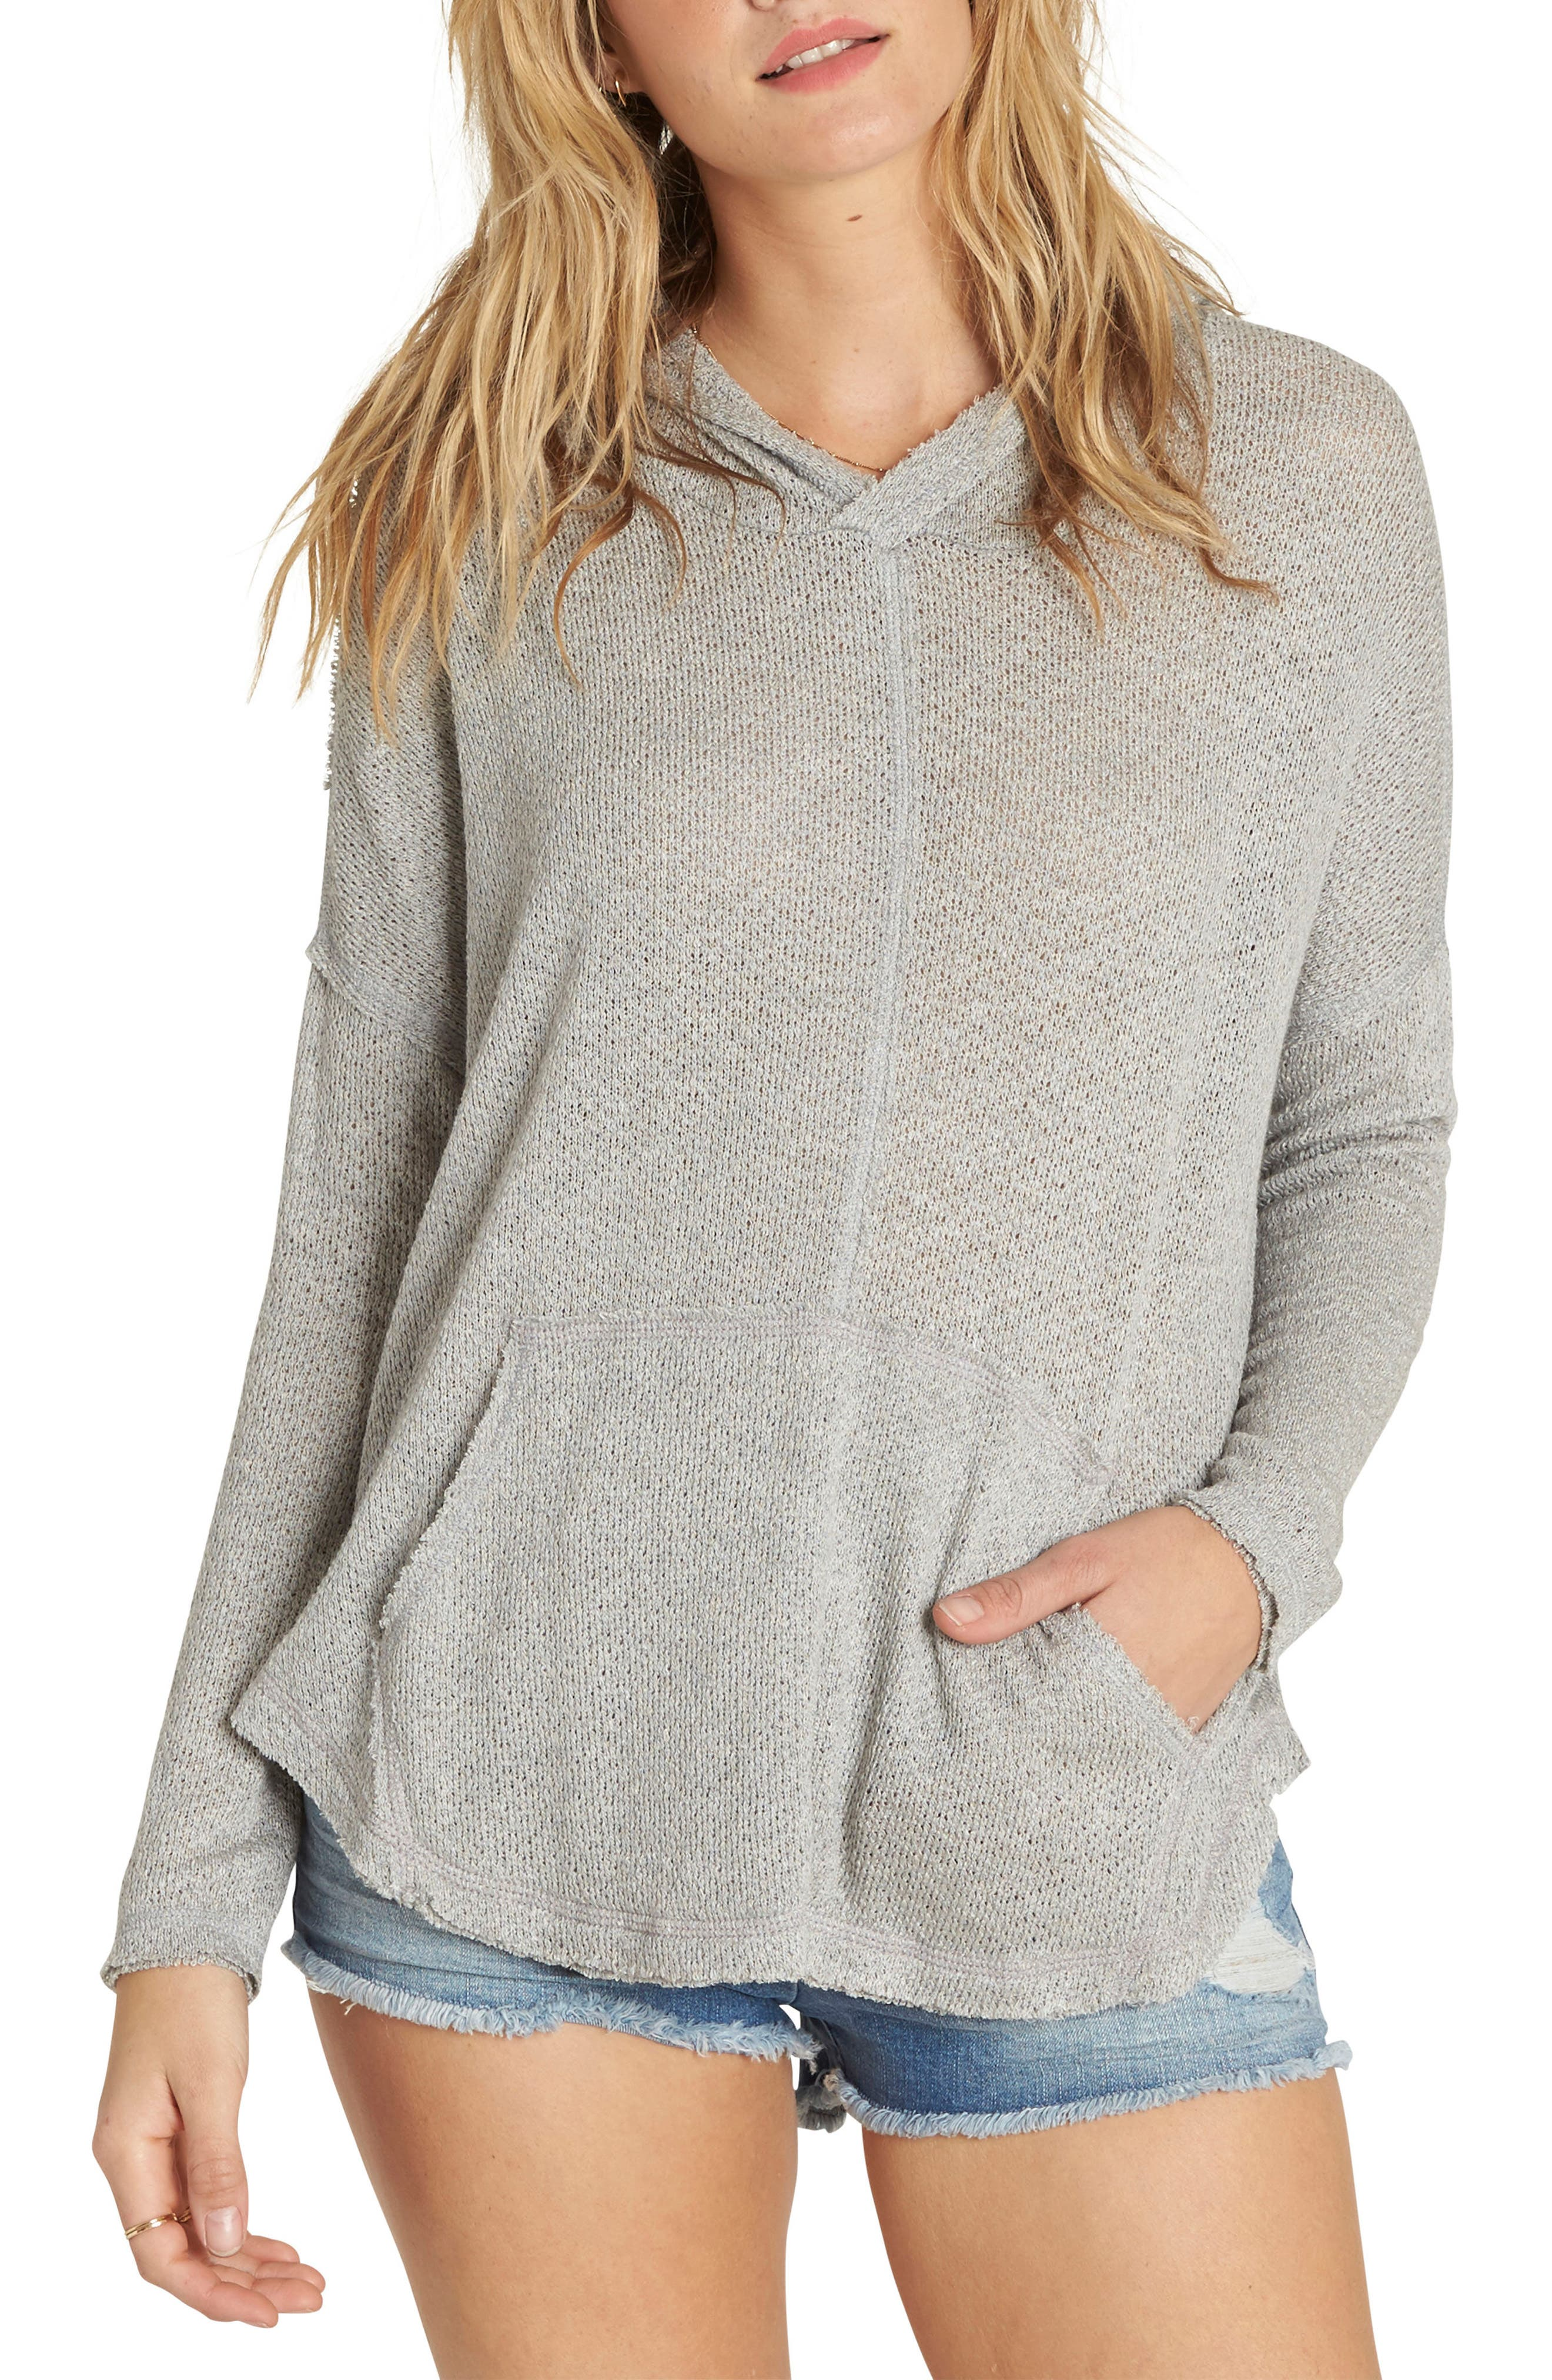 These Days Hooded Top,                         Main,                         color, Dark Athletic Grey